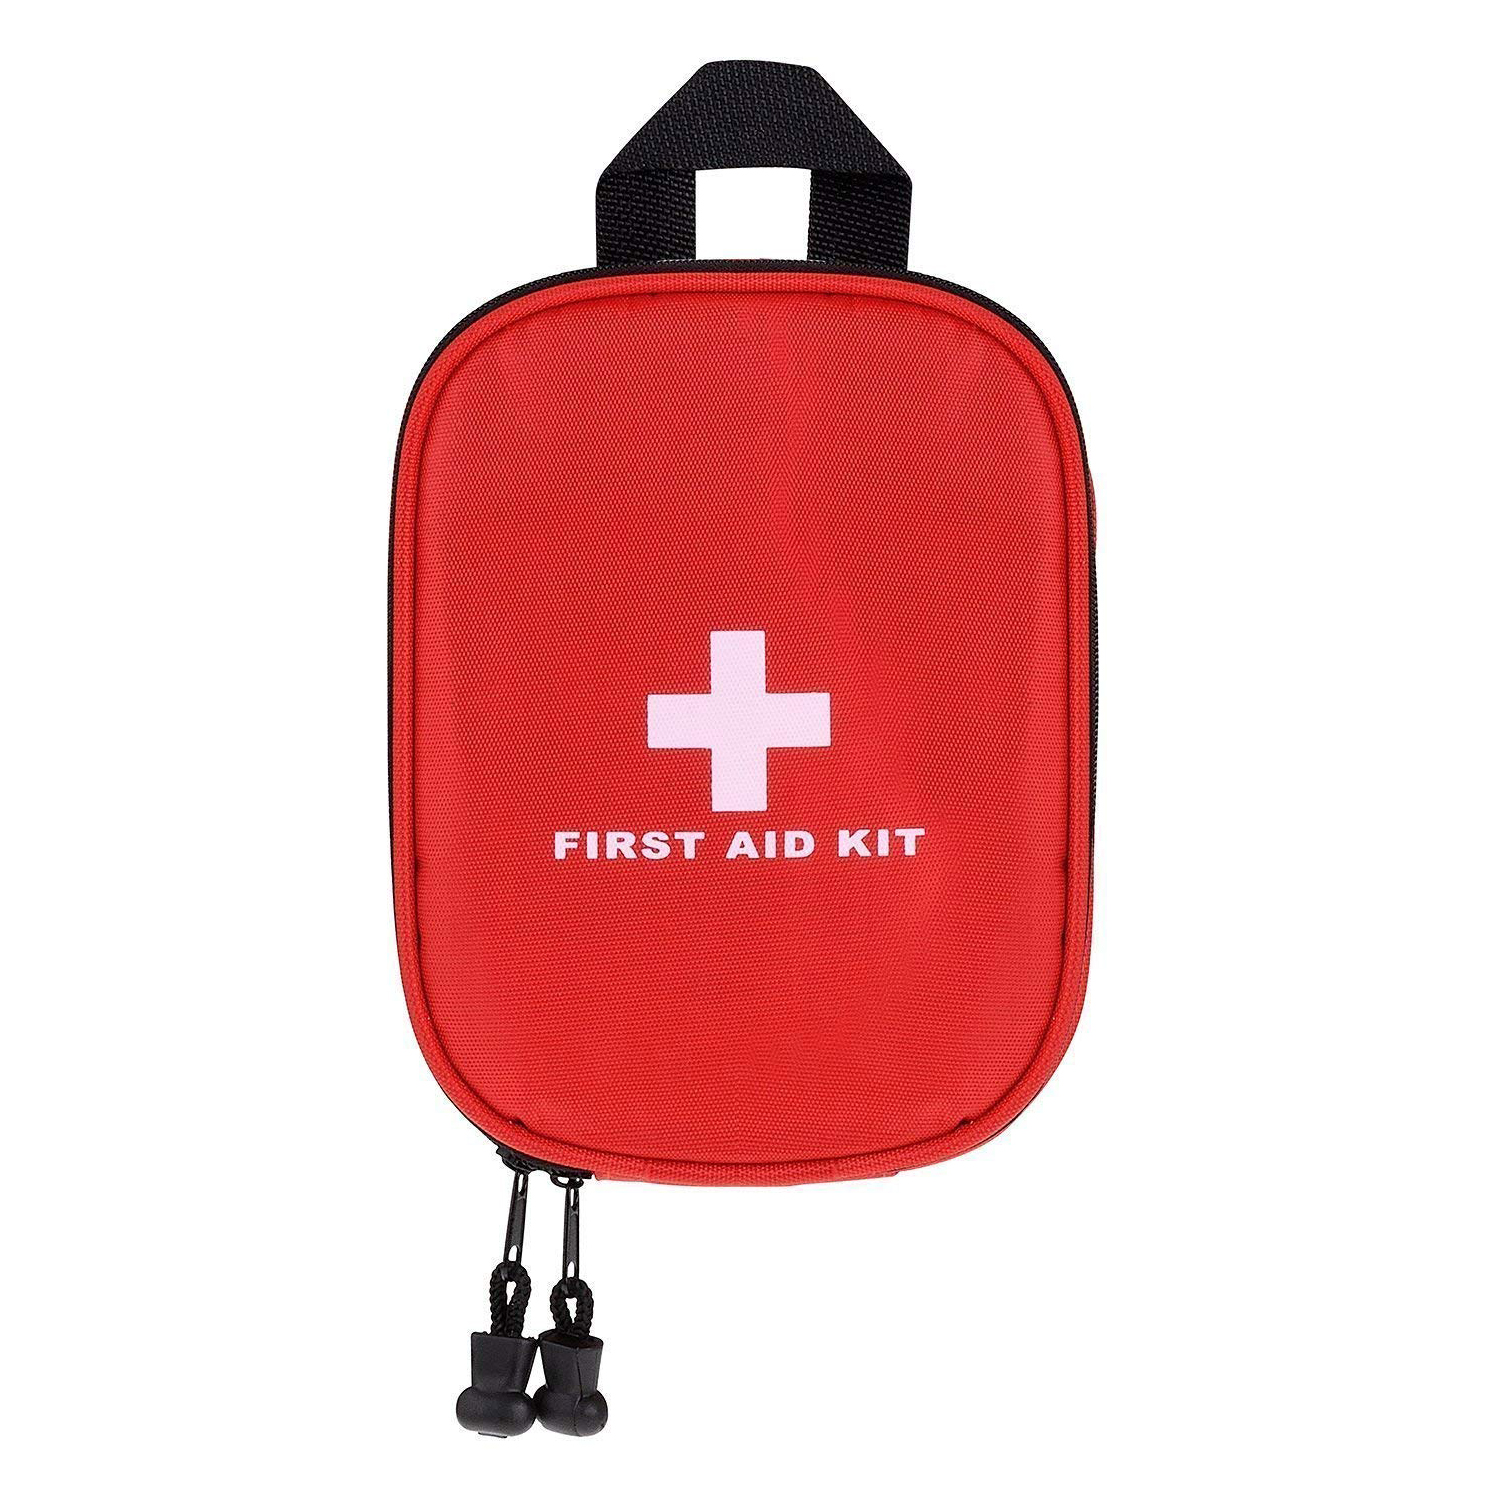 First Aid Kit- Medical Emergency Kit Waterproof Portable Essential Injuries For Car Kitchen Camping Travel Office Sports And H